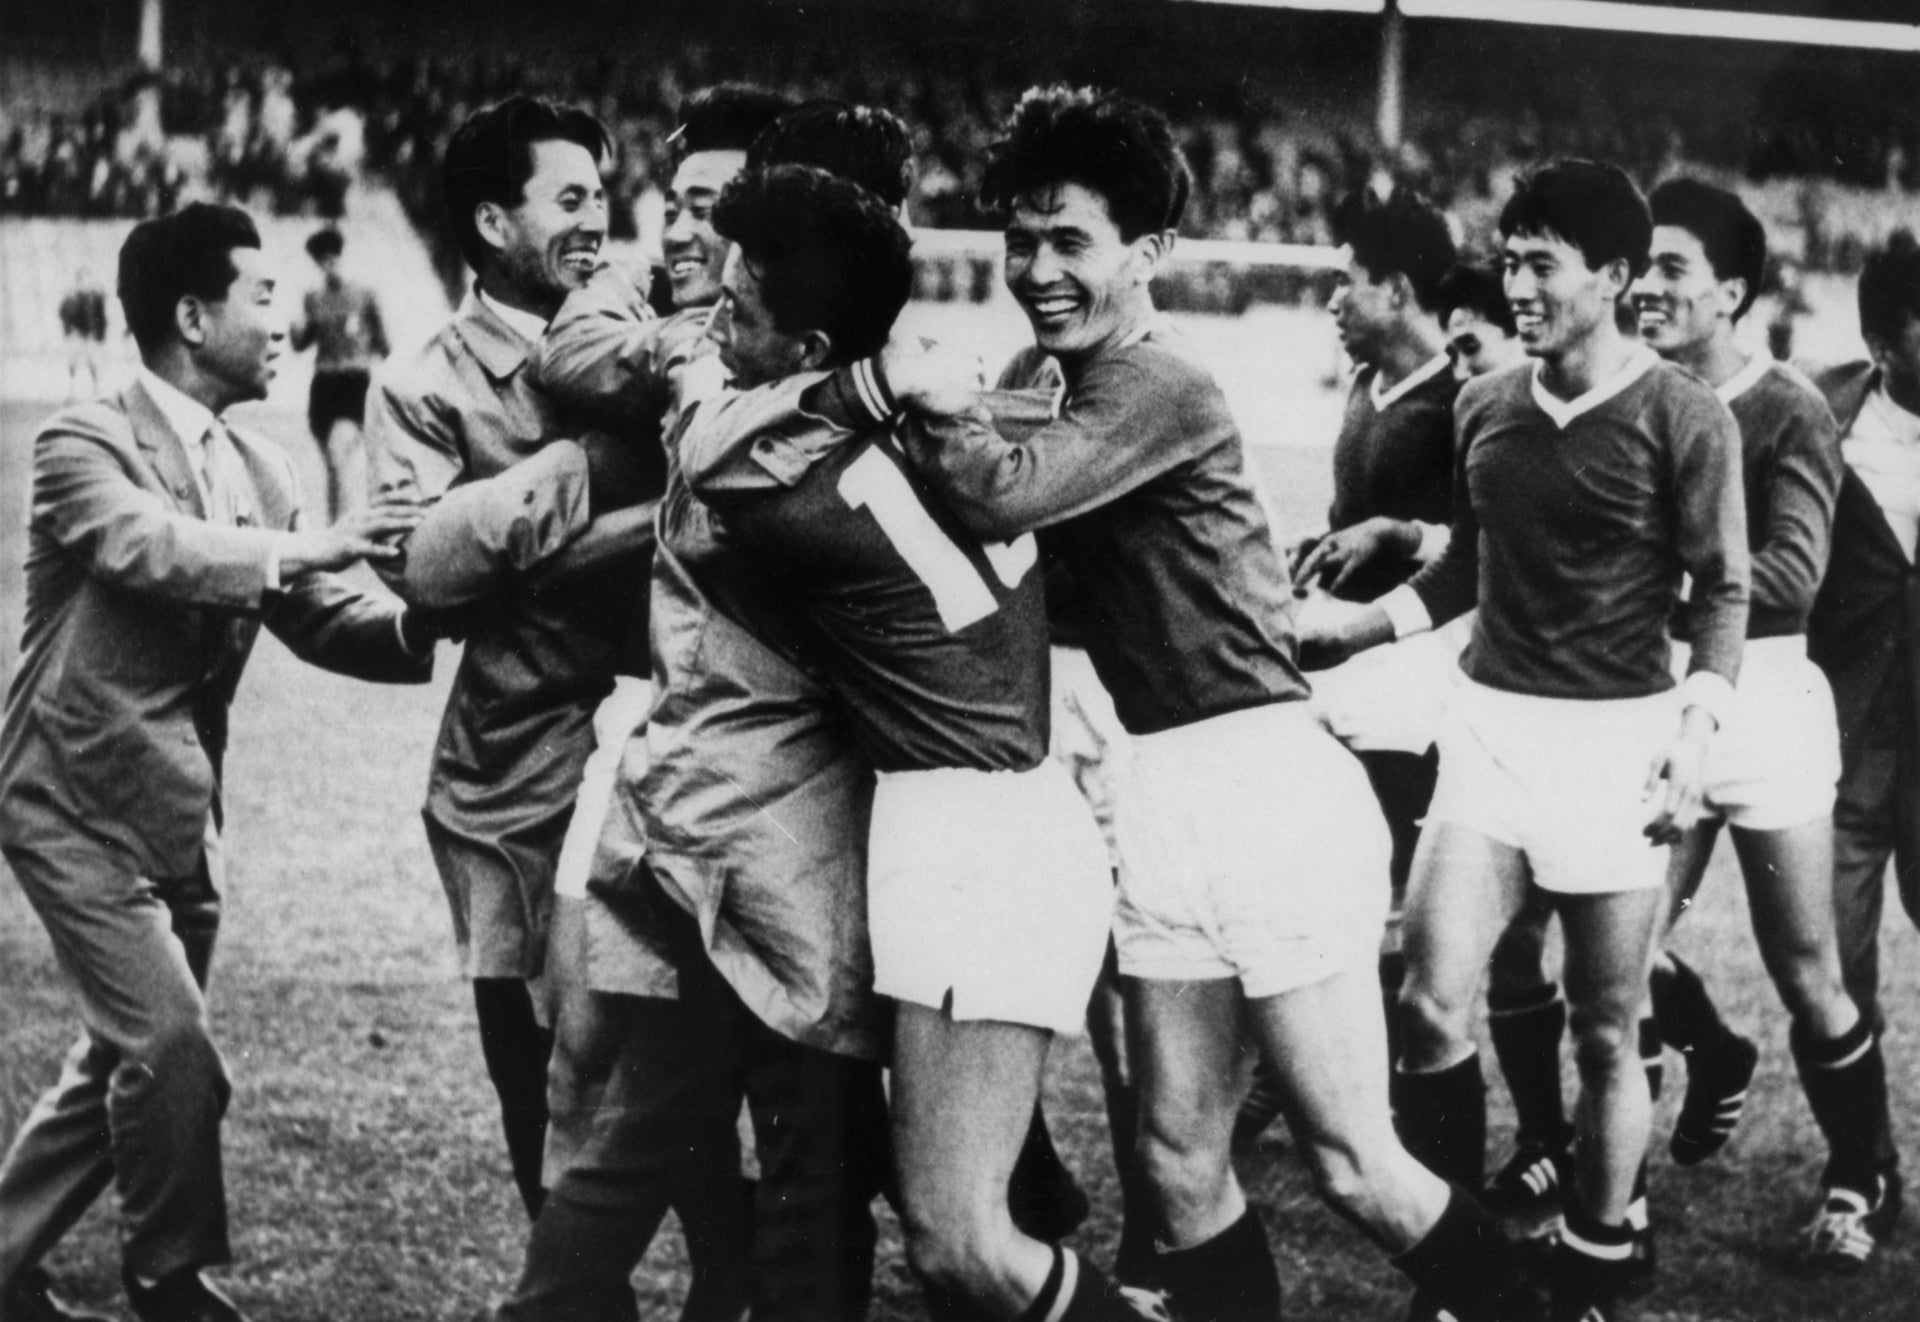 The North Korean team celebrates defeating Italy at Ayresome Park, Middlesbrough, during the 1966 World Cup.